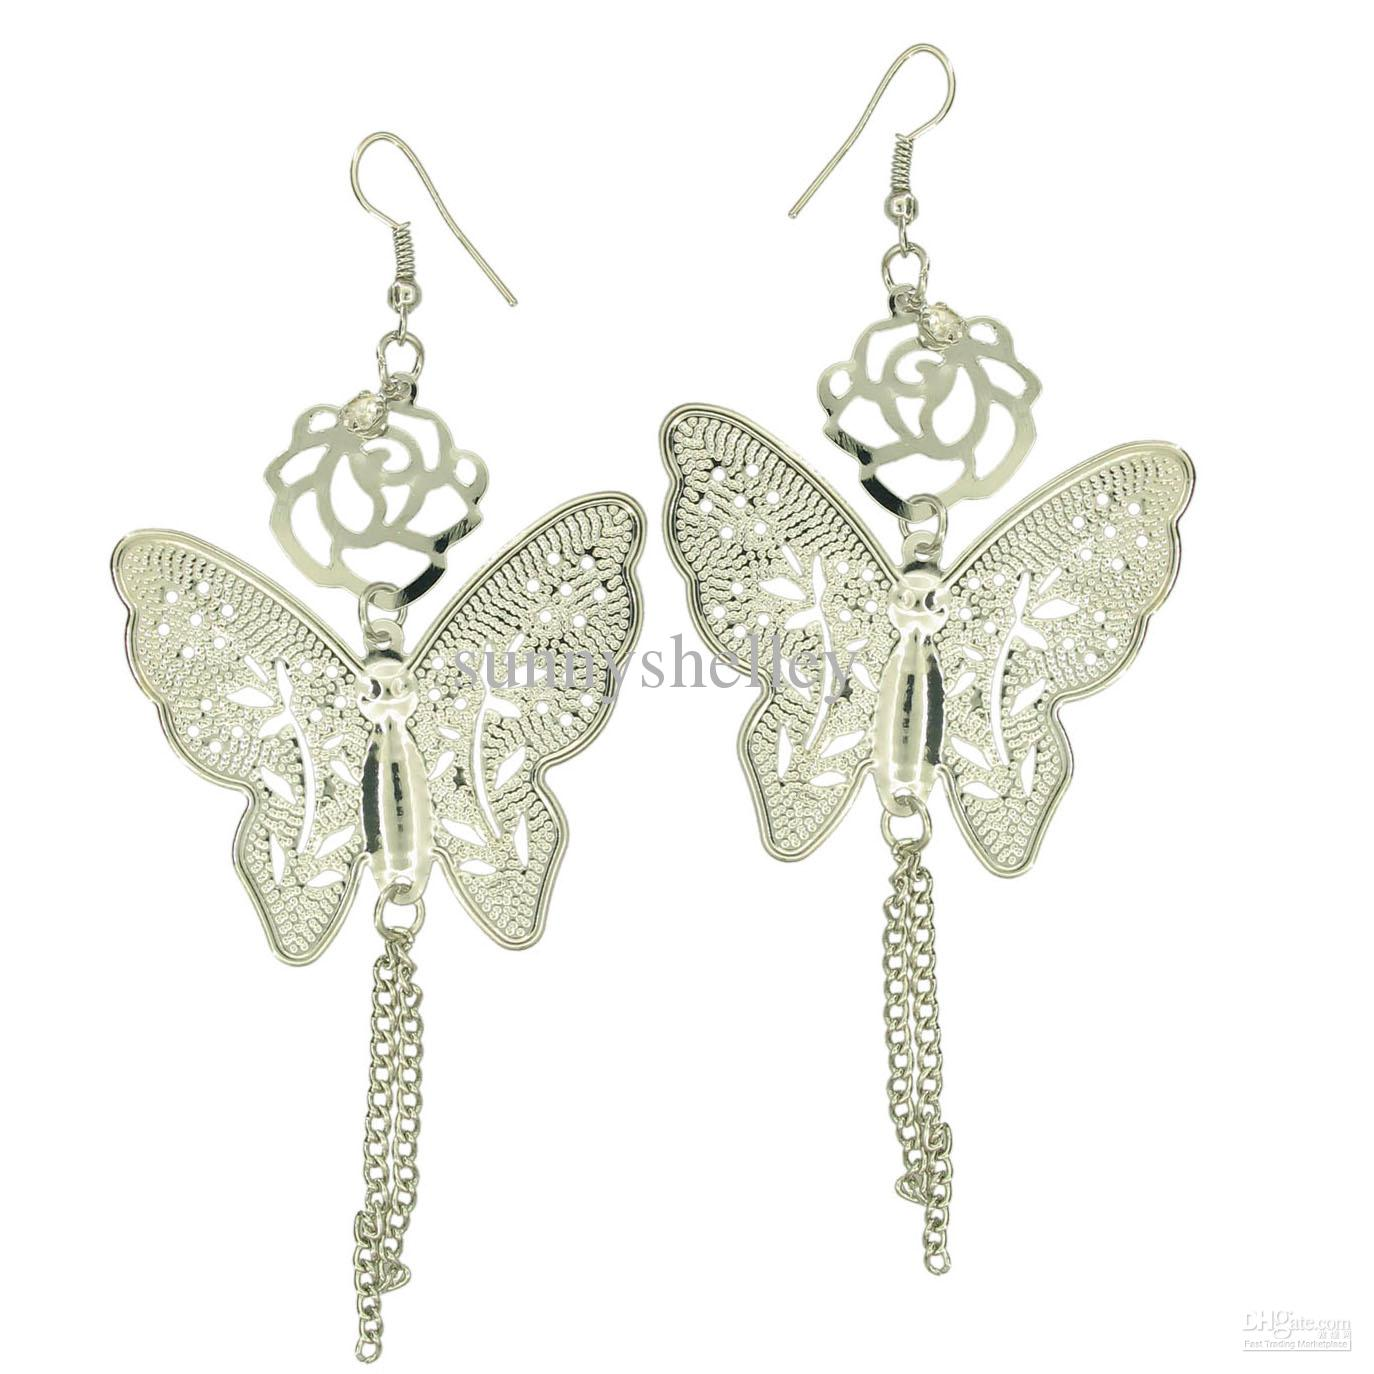 earrings for women gyartrn